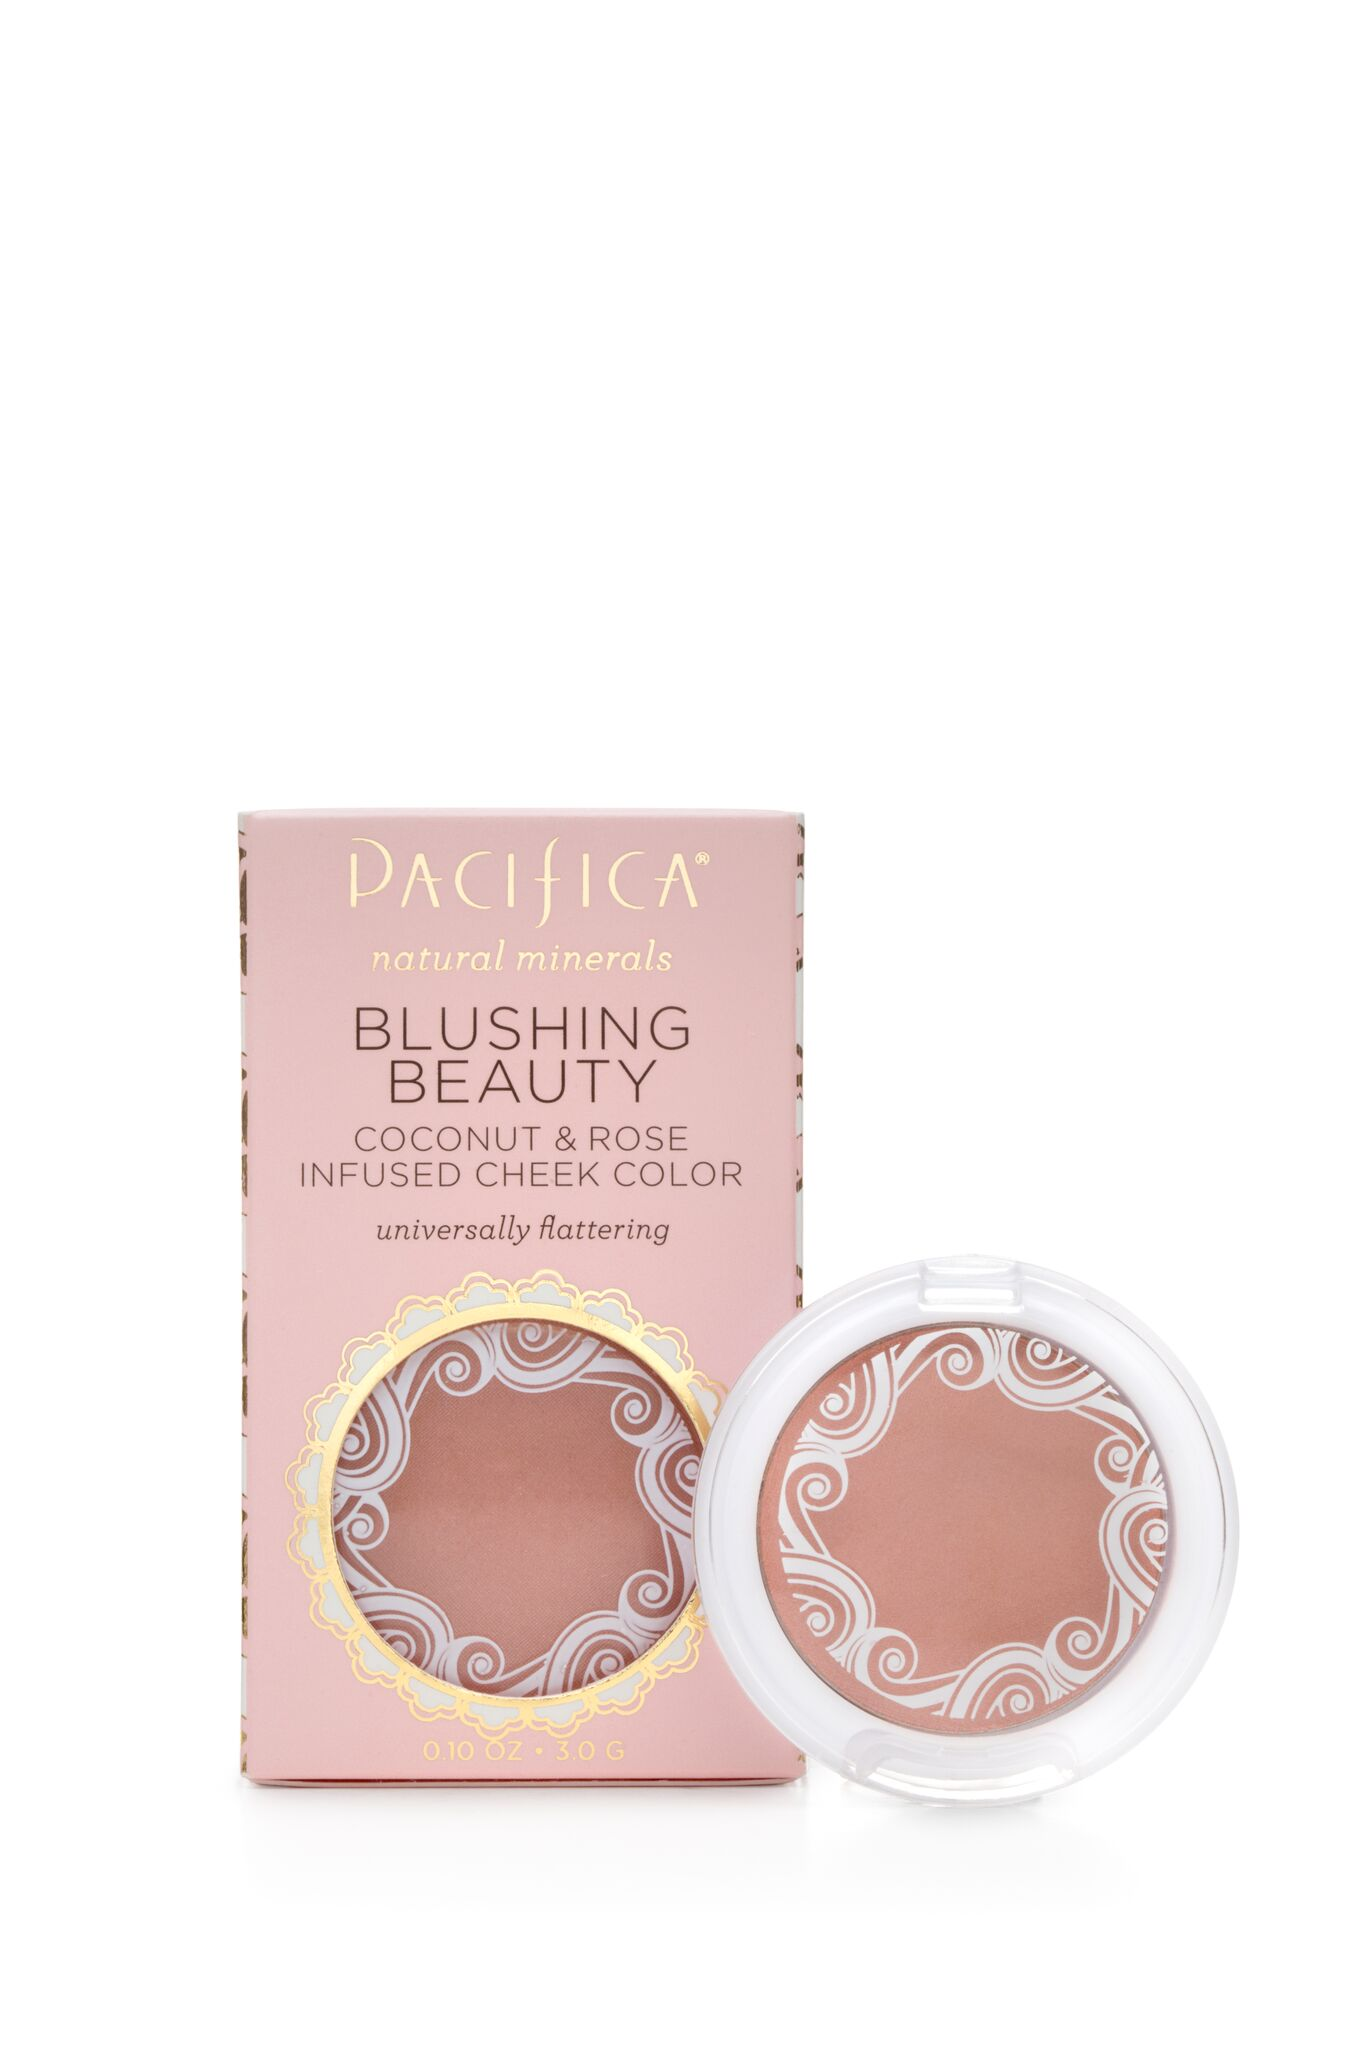 Blushious Coconut and Rose Infused Cheek Colour Camelia 3g (Formerly Blushing Beauty)